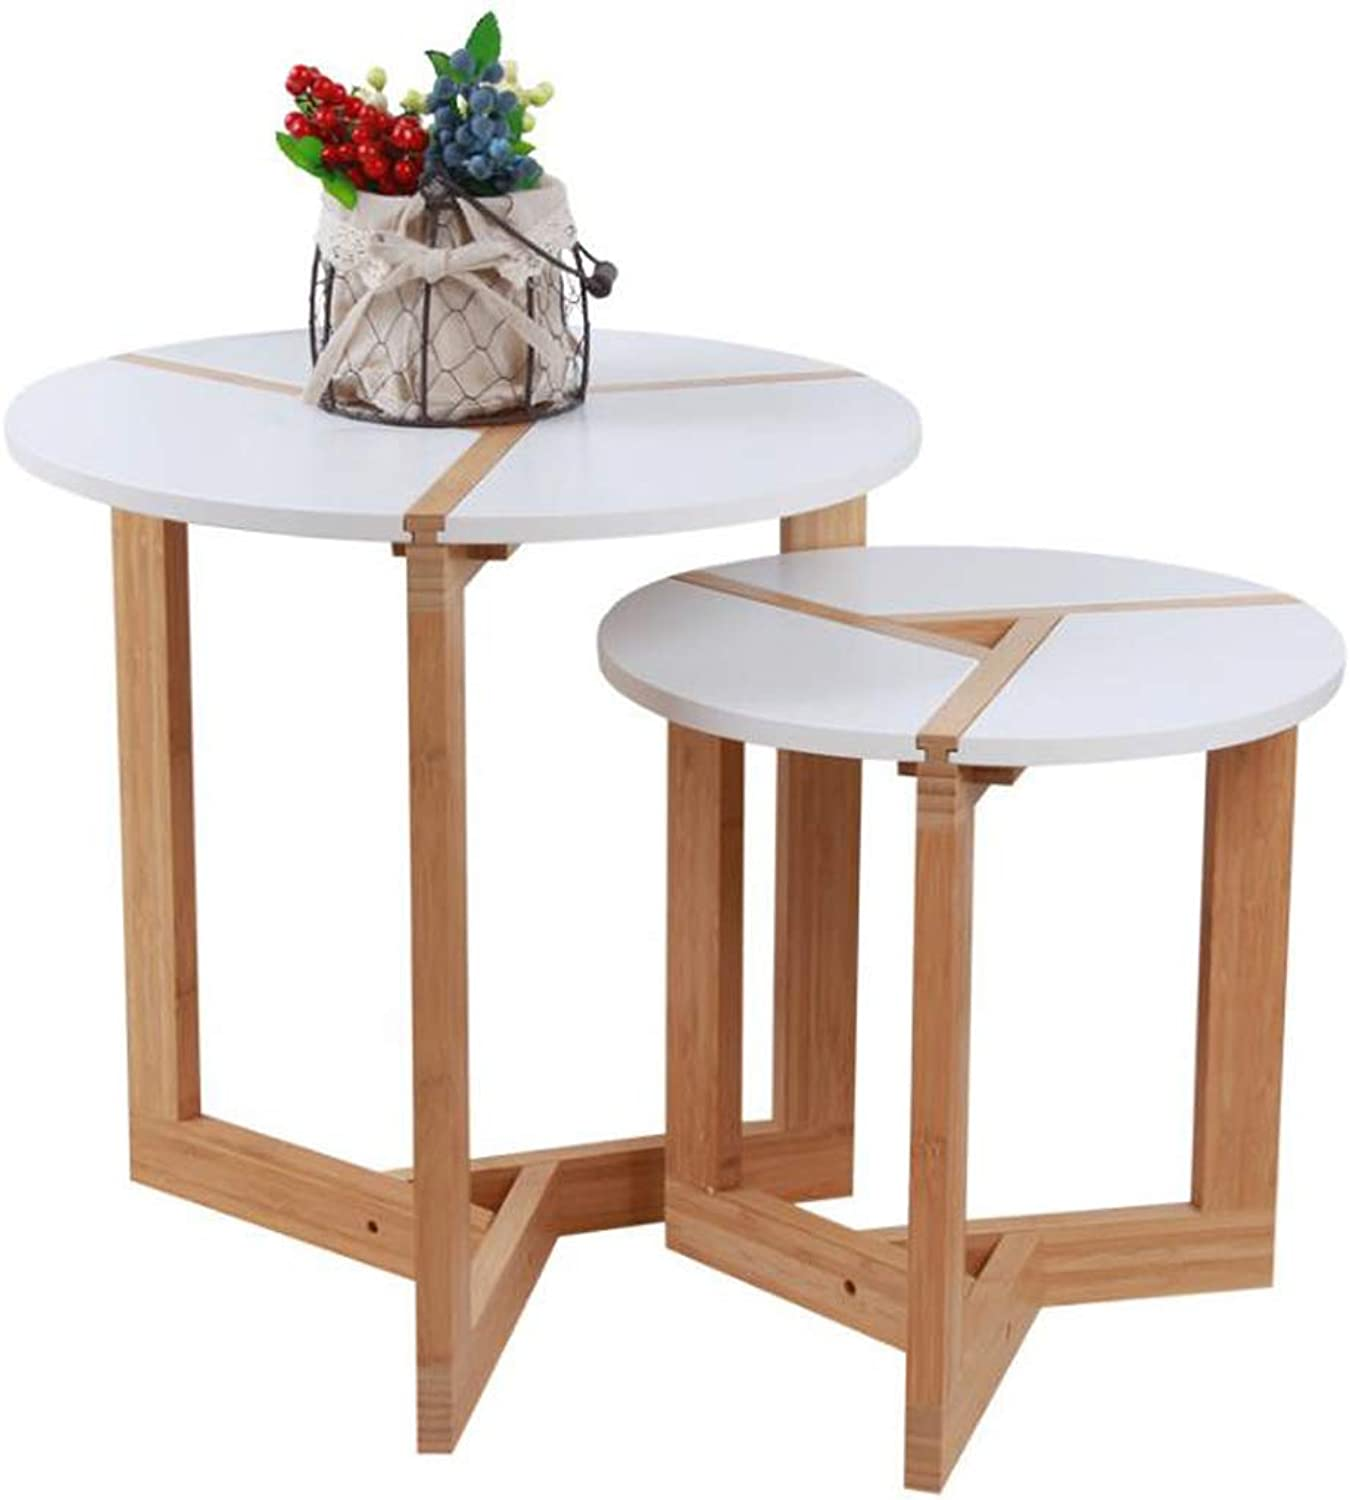 Solid Wood Nordic Coffee Table Dining Table Balcony Coffee Small Round Table Bedside Table Creative Sofa Side,Single Sale (Size   S)